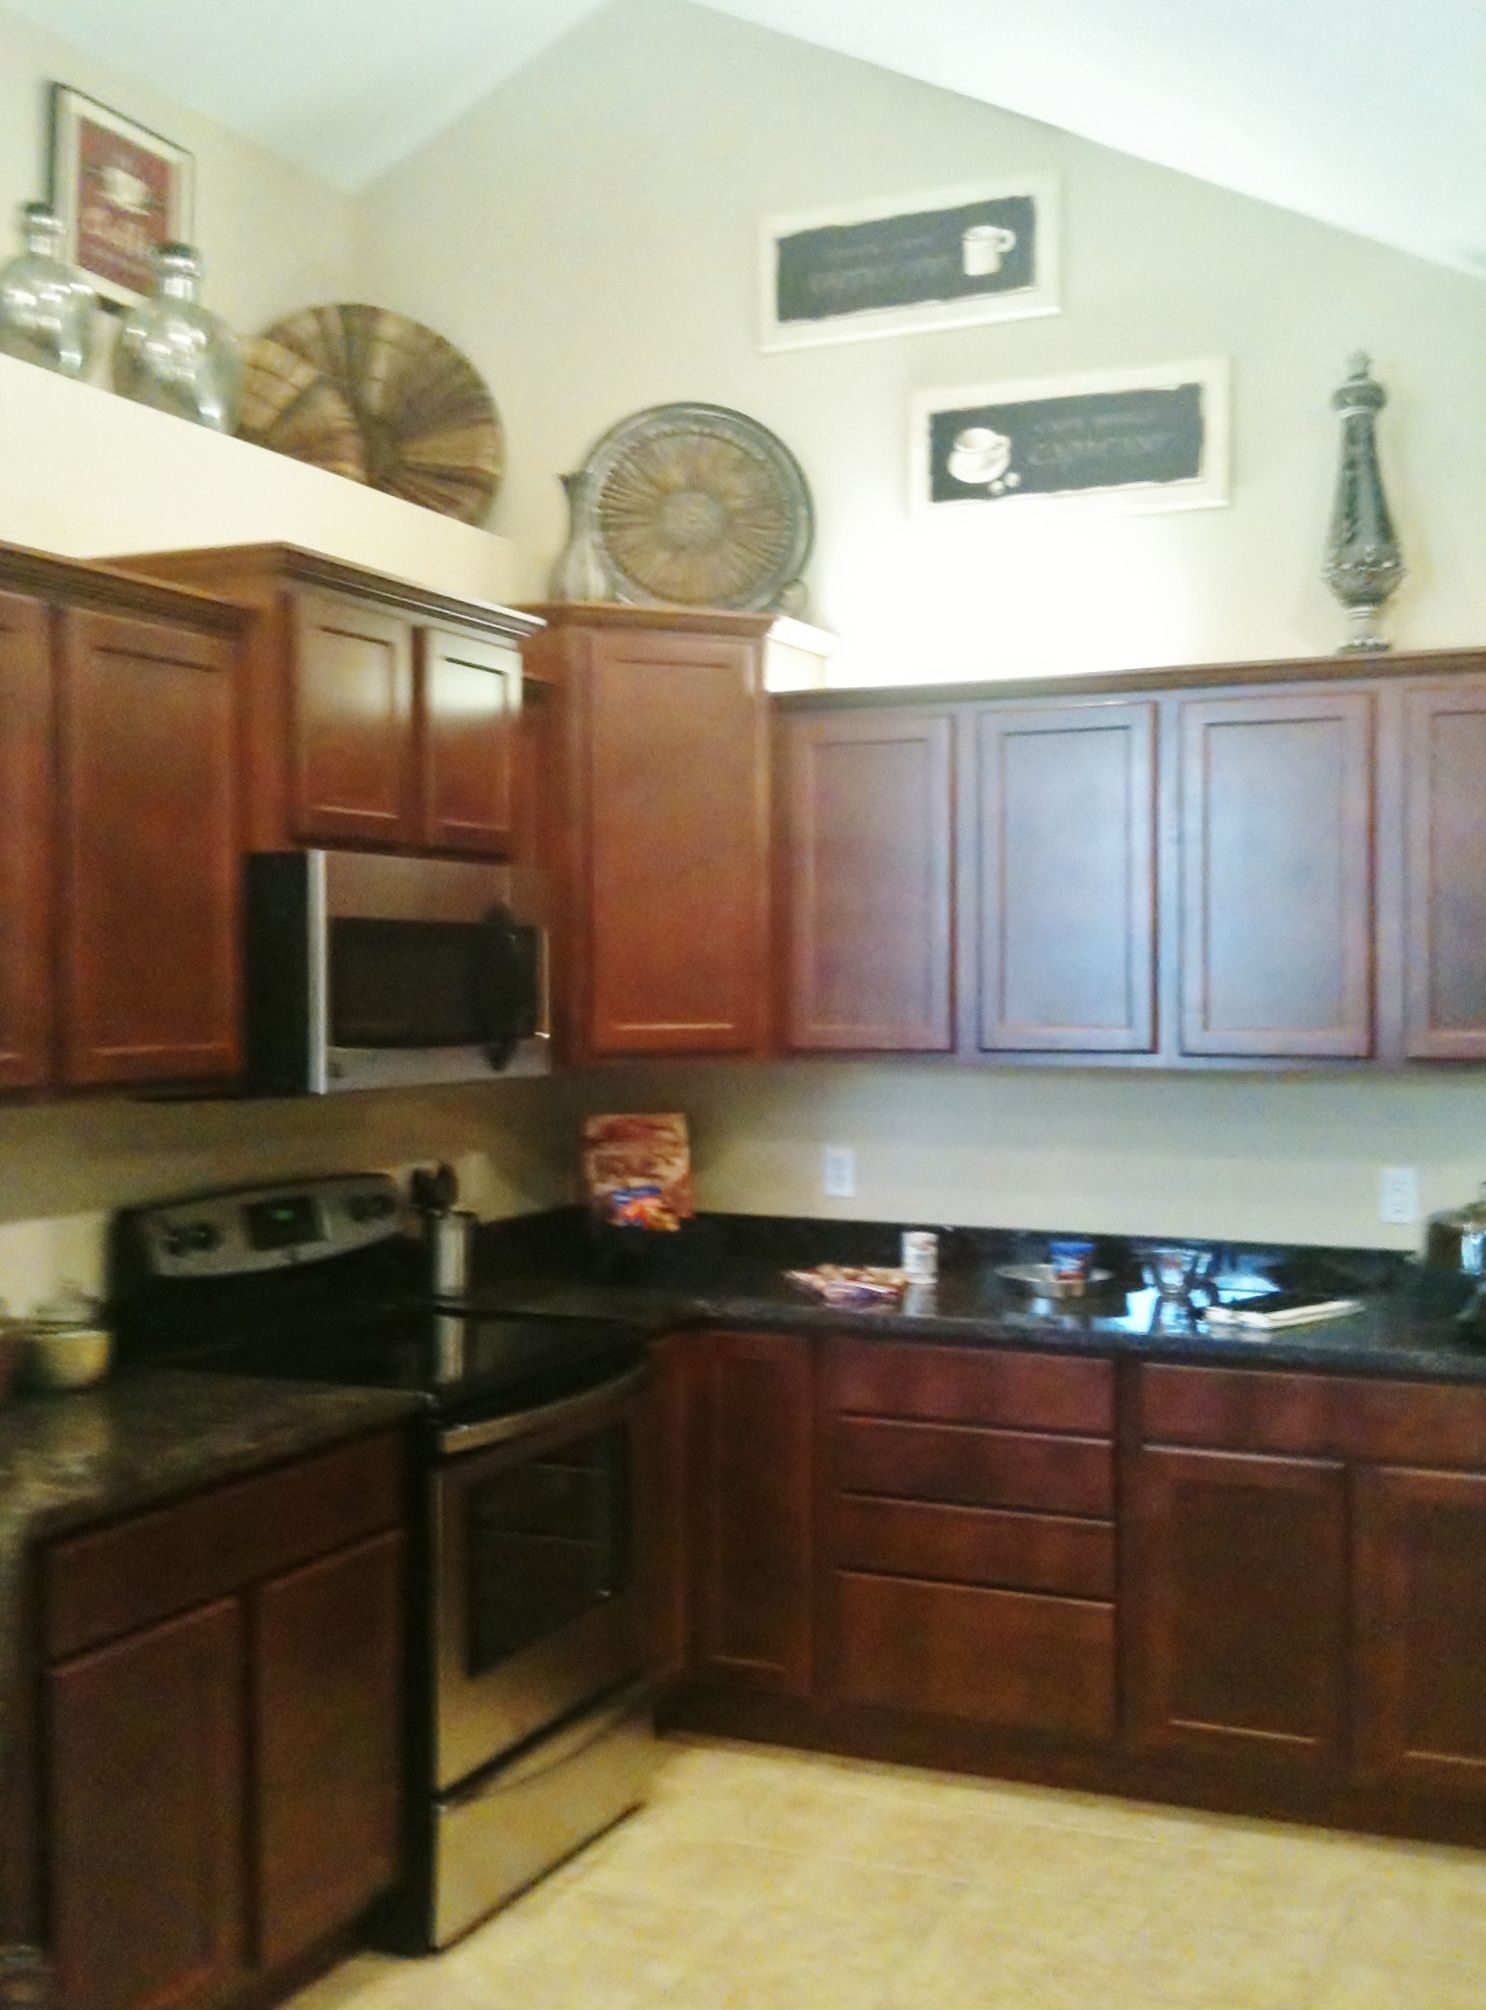 Great Kitchen Cabinets Great Decor Above Kitchen Cabinets Adds A Nice Touch